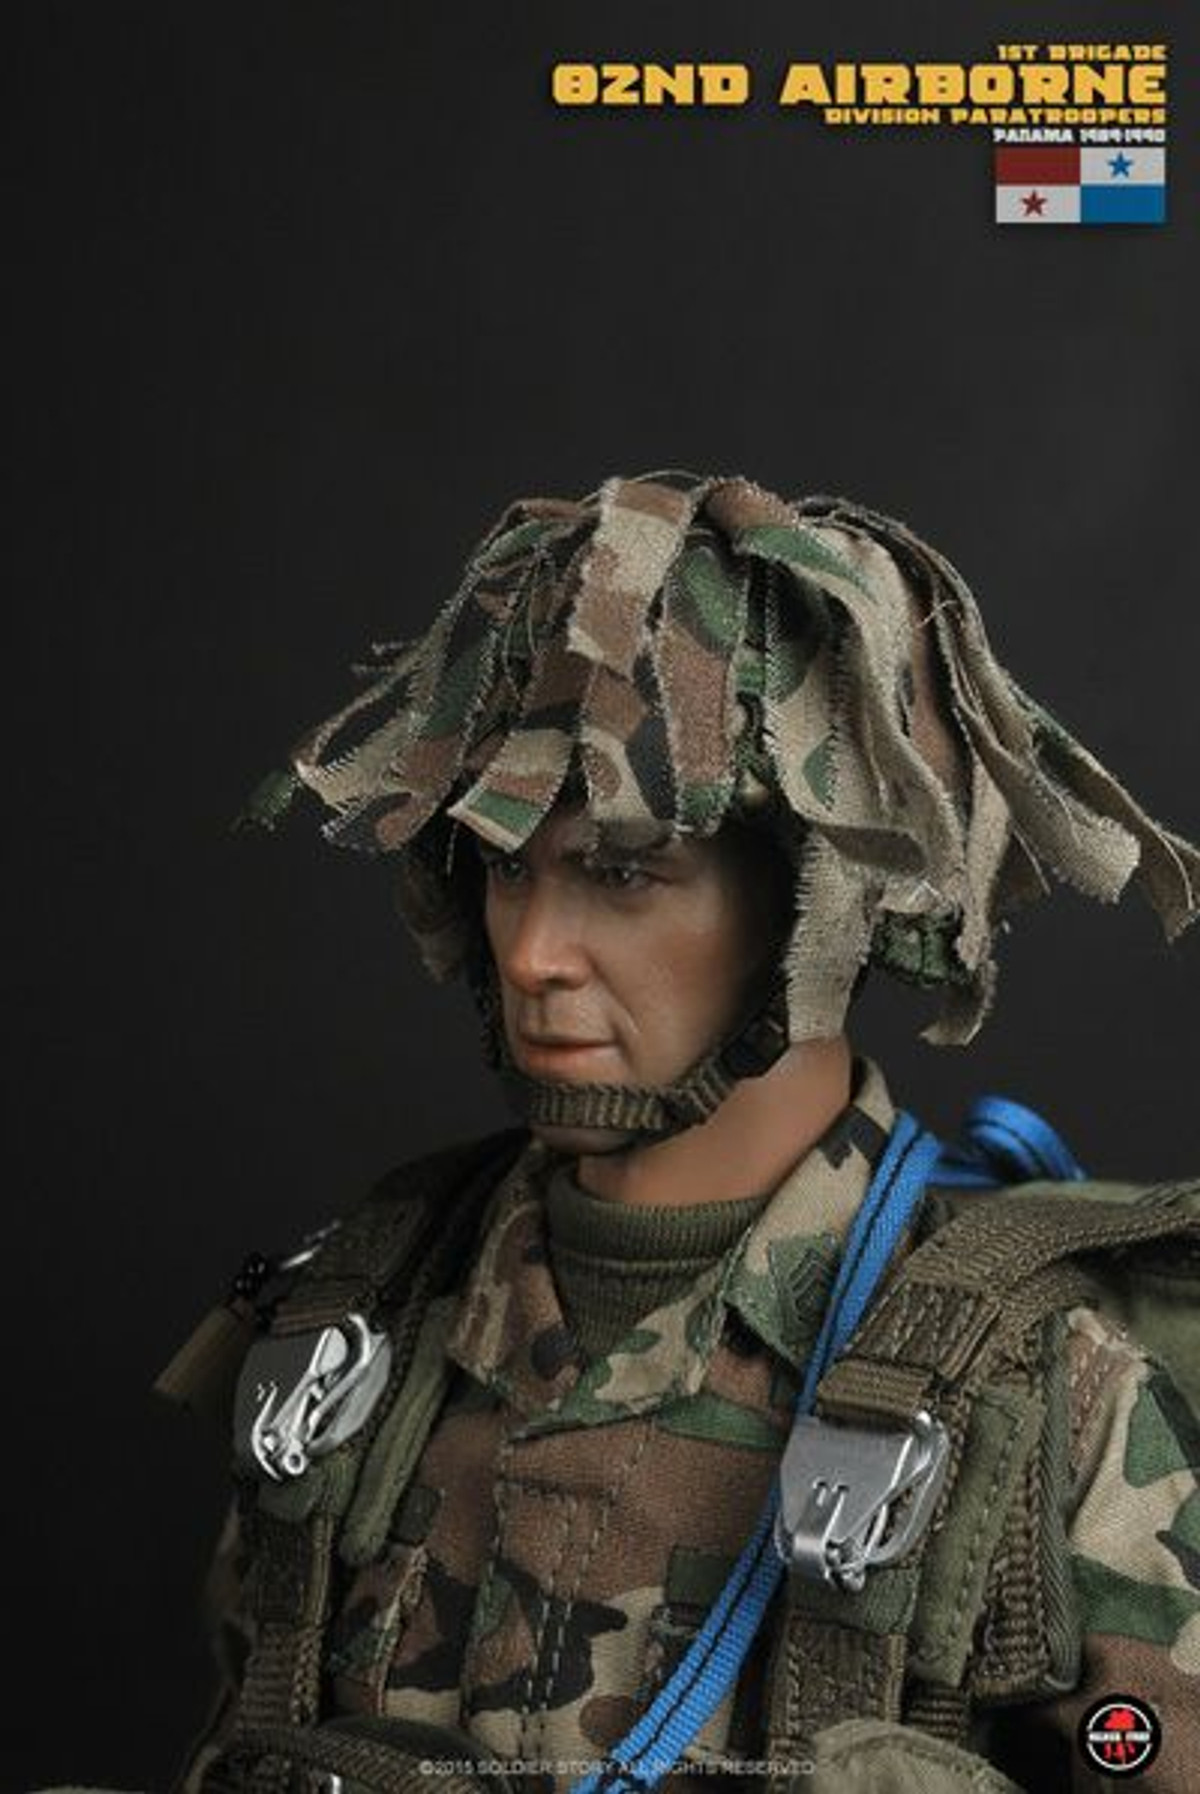 GI JOE Action Figures 1//6 Scale Helmet w// Camo Cover 82nd Airborne Female